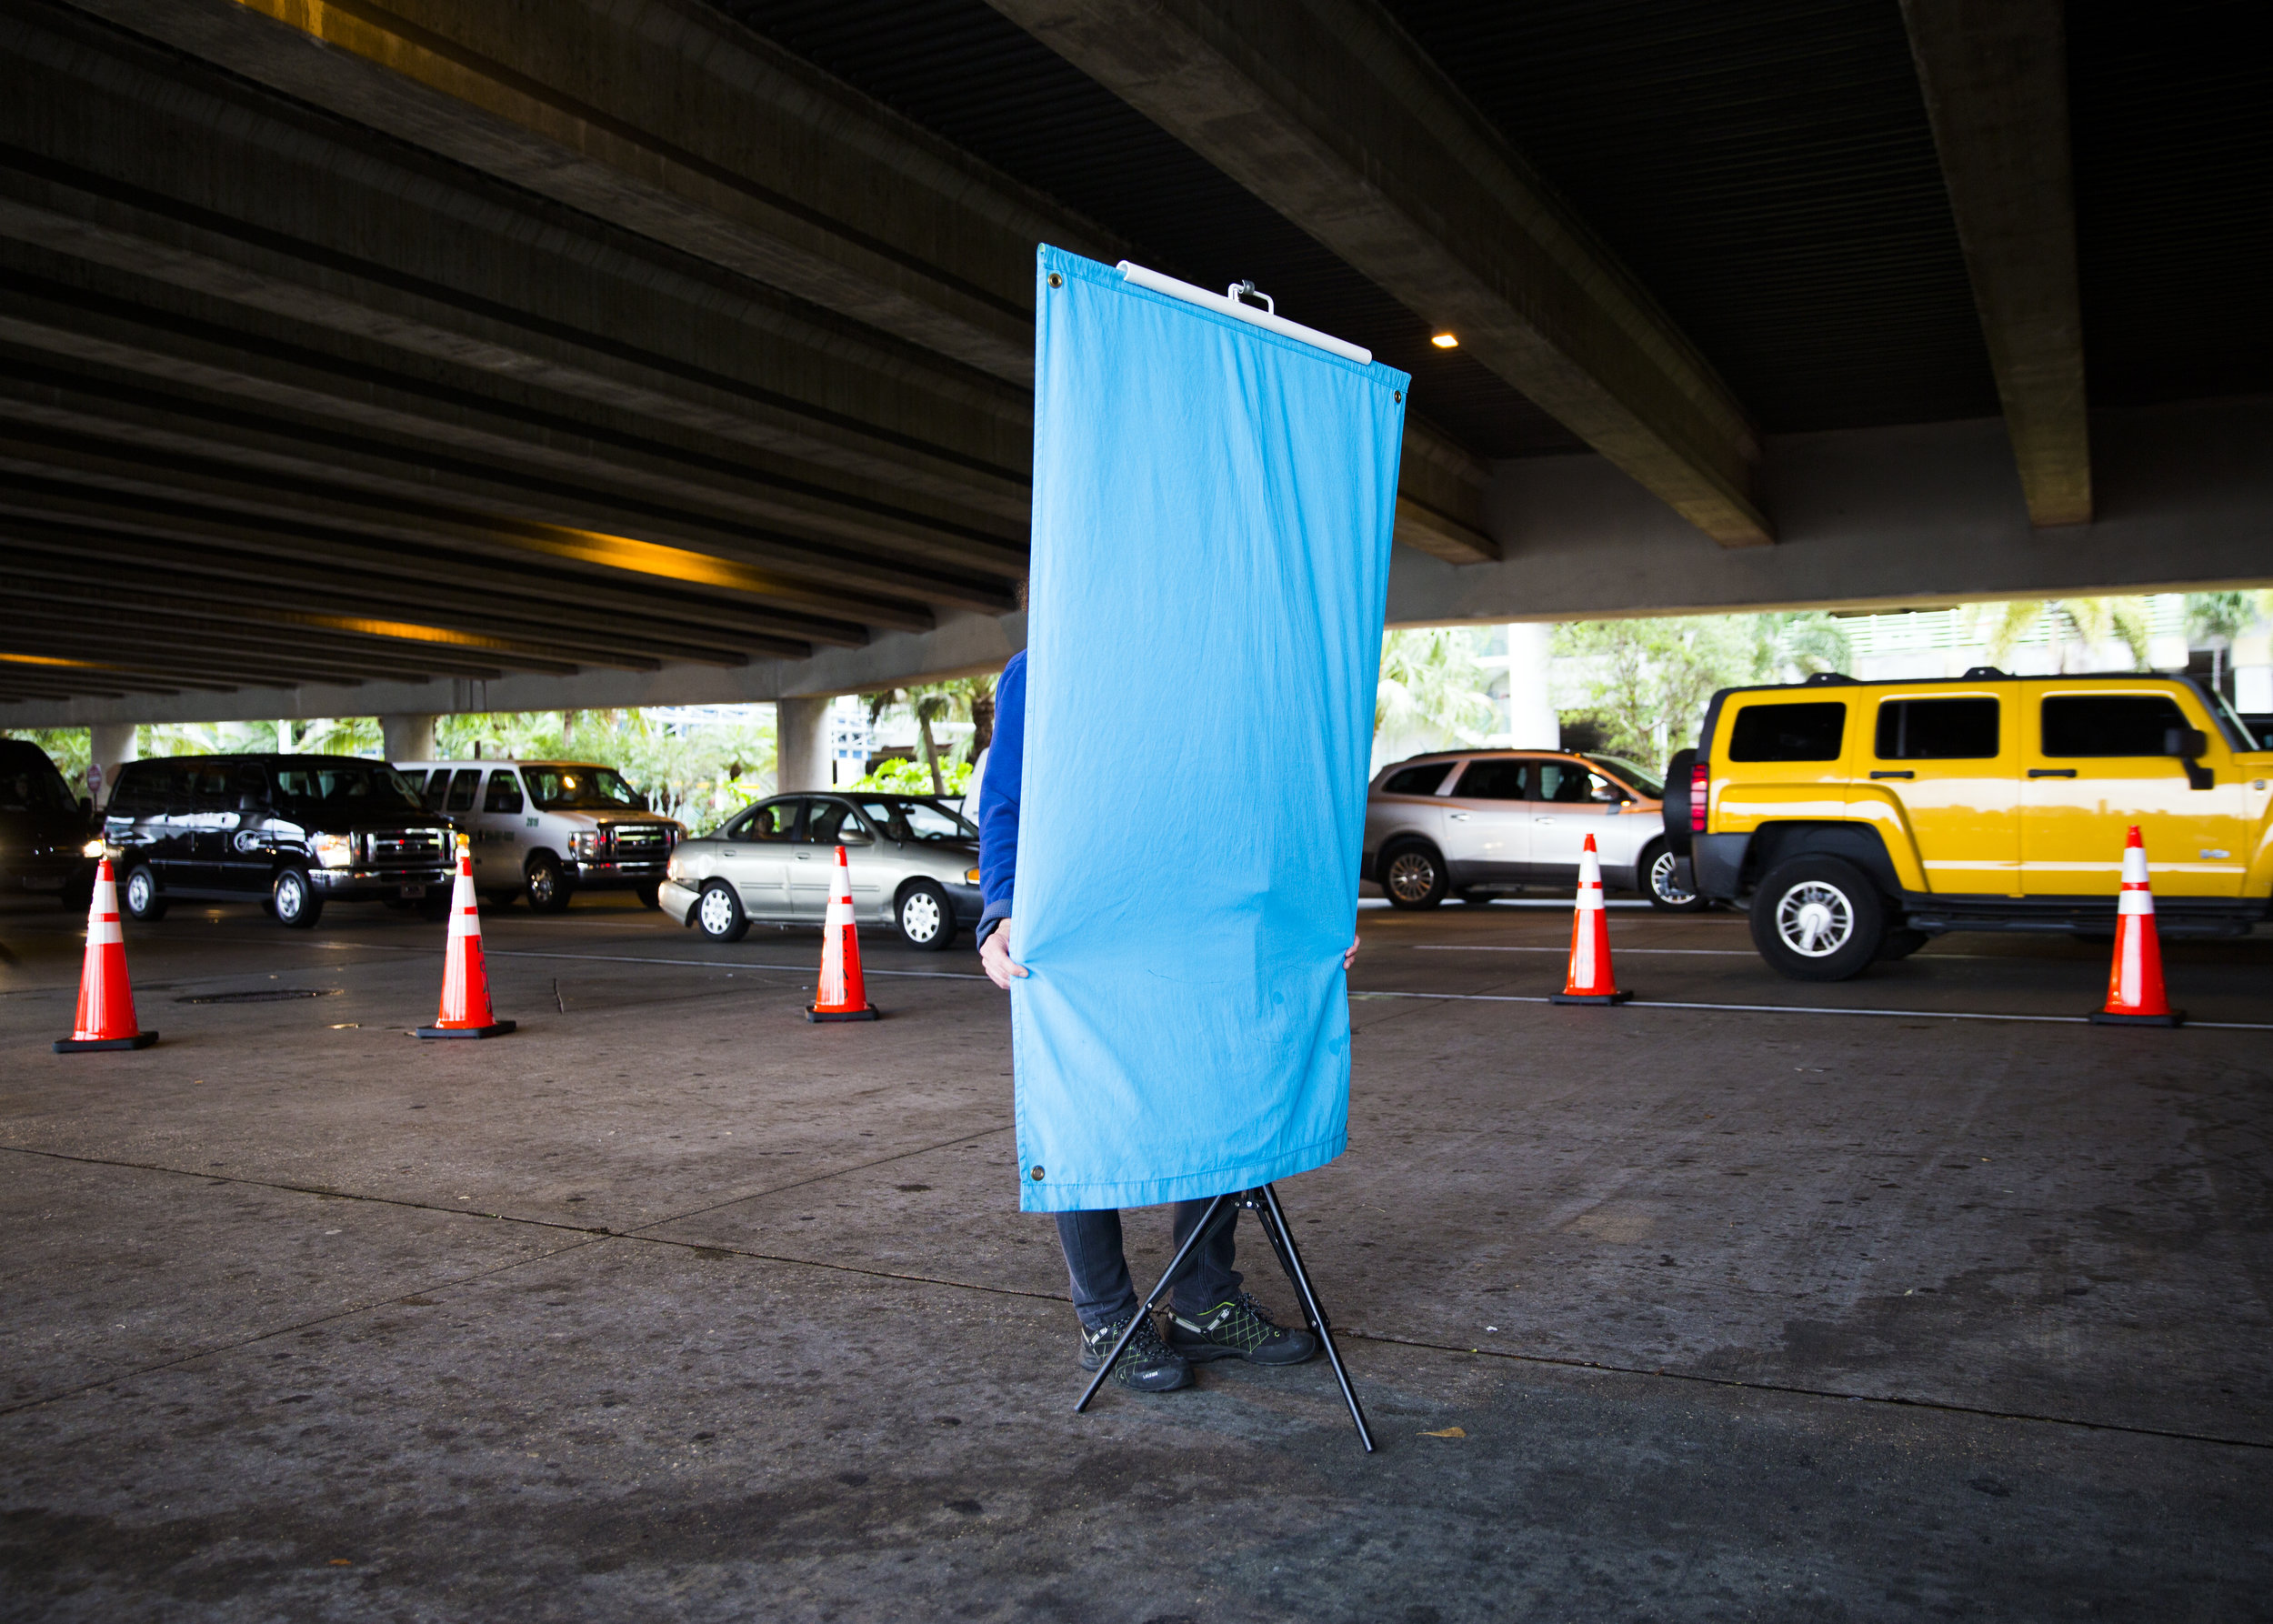 A worker with Florida Licensing on Wheels holds a backdrop taught for identification photos between the baggage claims for terminals one and two at the Fort Lauderdale - Hollywood International Airport in Fort Lauderdale, Fla. on Saturday, January 7, 2017. A Safer Florida and Florida Licensing on Wheels arrived at the airport late afternoon to help those who lost their drivers license as a result of the shooting get a form of identification.